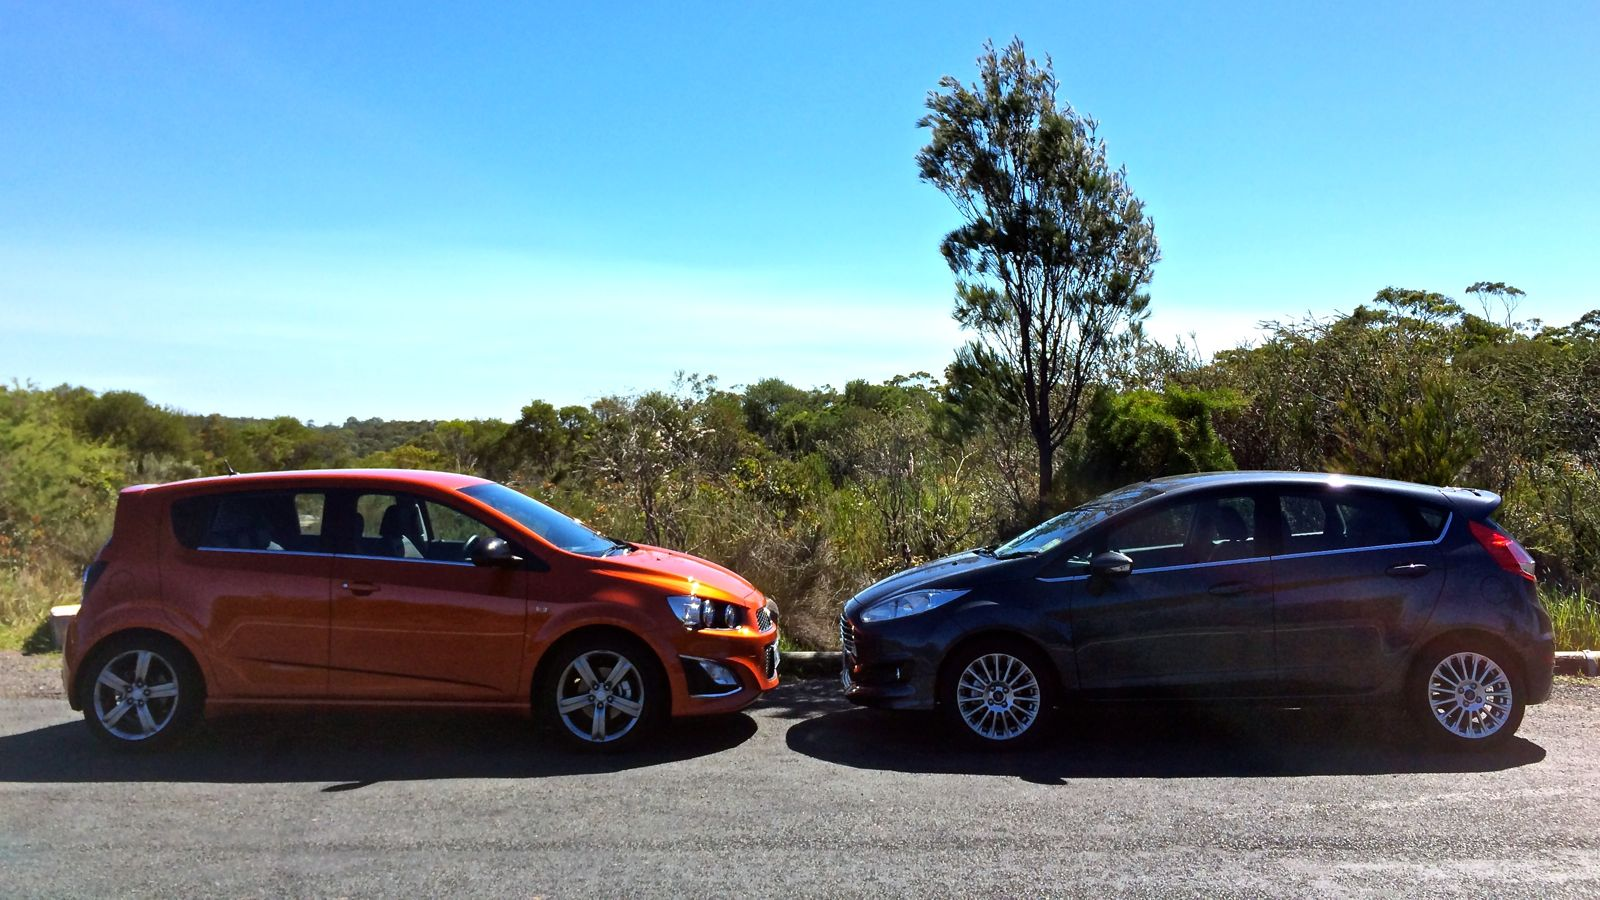 Ford Fiesta Sport V Holden Barina Rs Comparison Review Caradvice